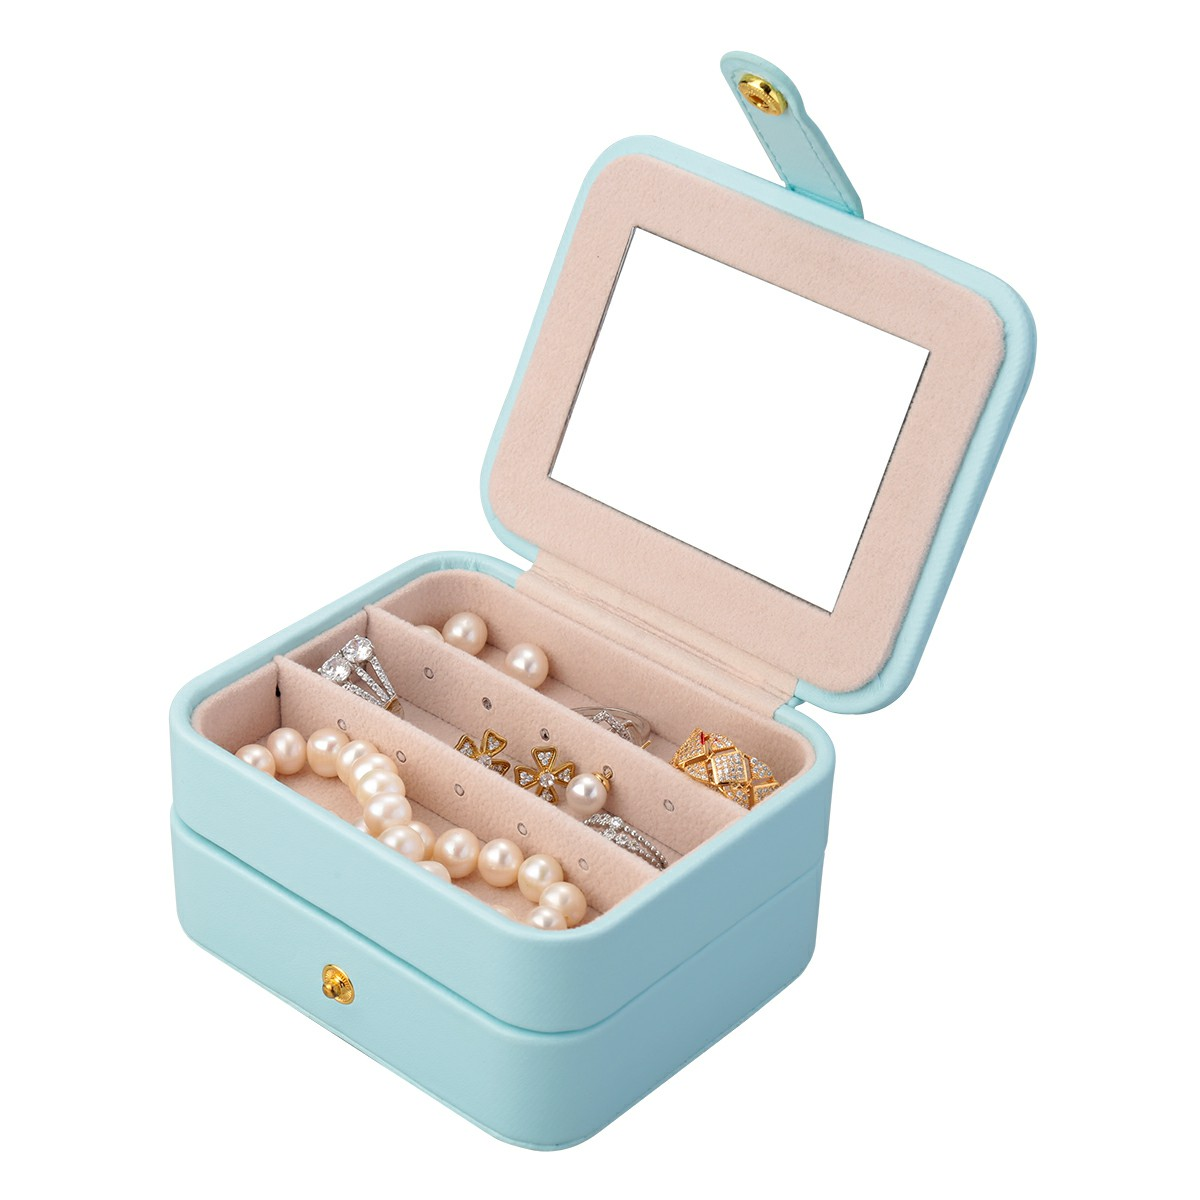 Creative Small Jewelry Box Multilayer Portable Travel Jewelry Box Leather Earrings Storage Box - Light Blue